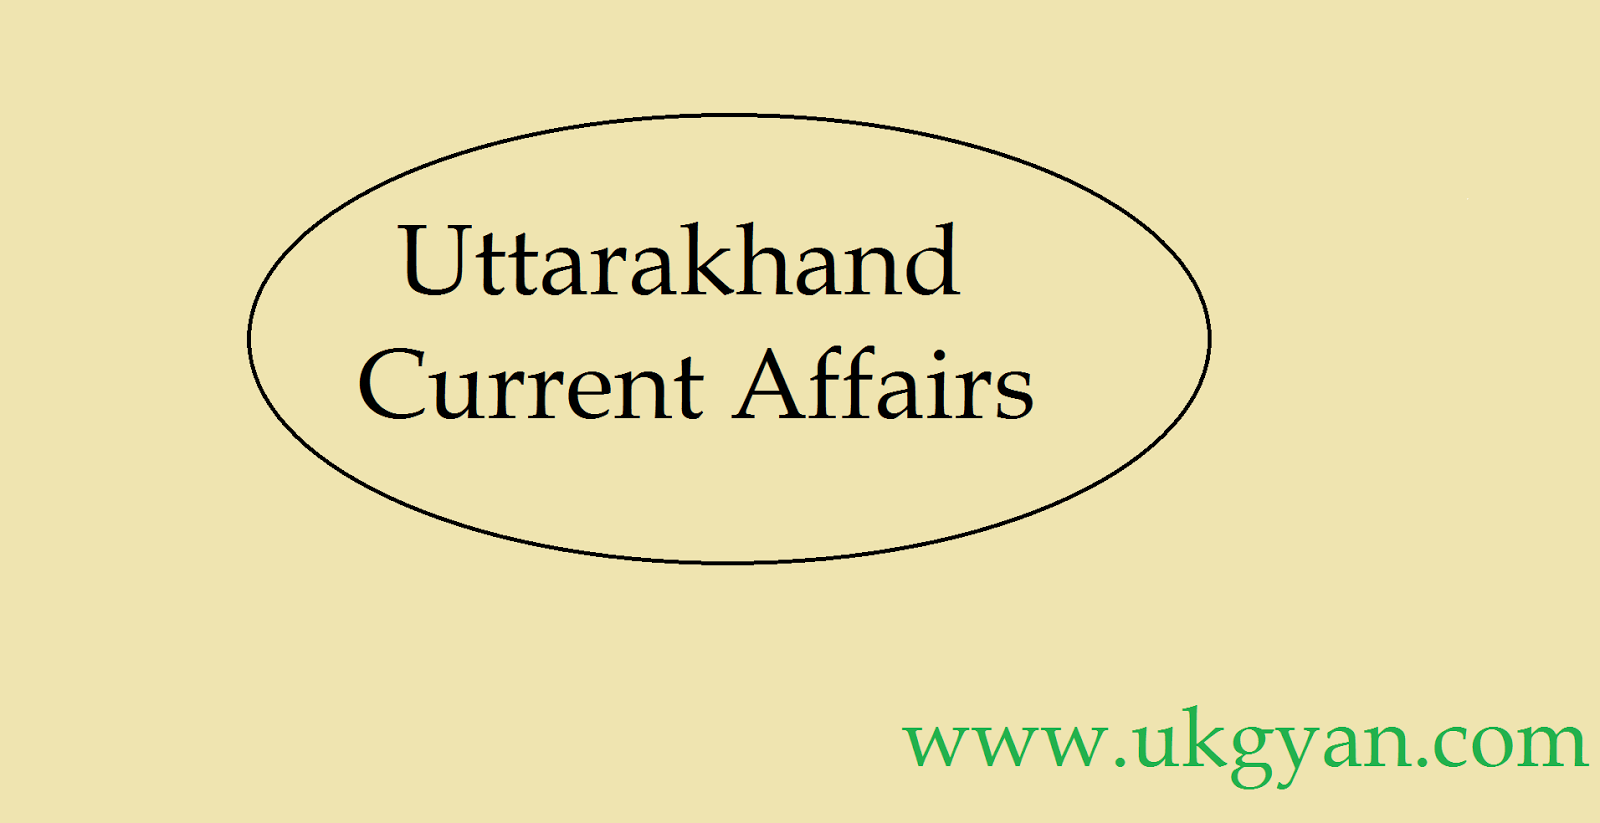 Uttarakhand Current Affairs